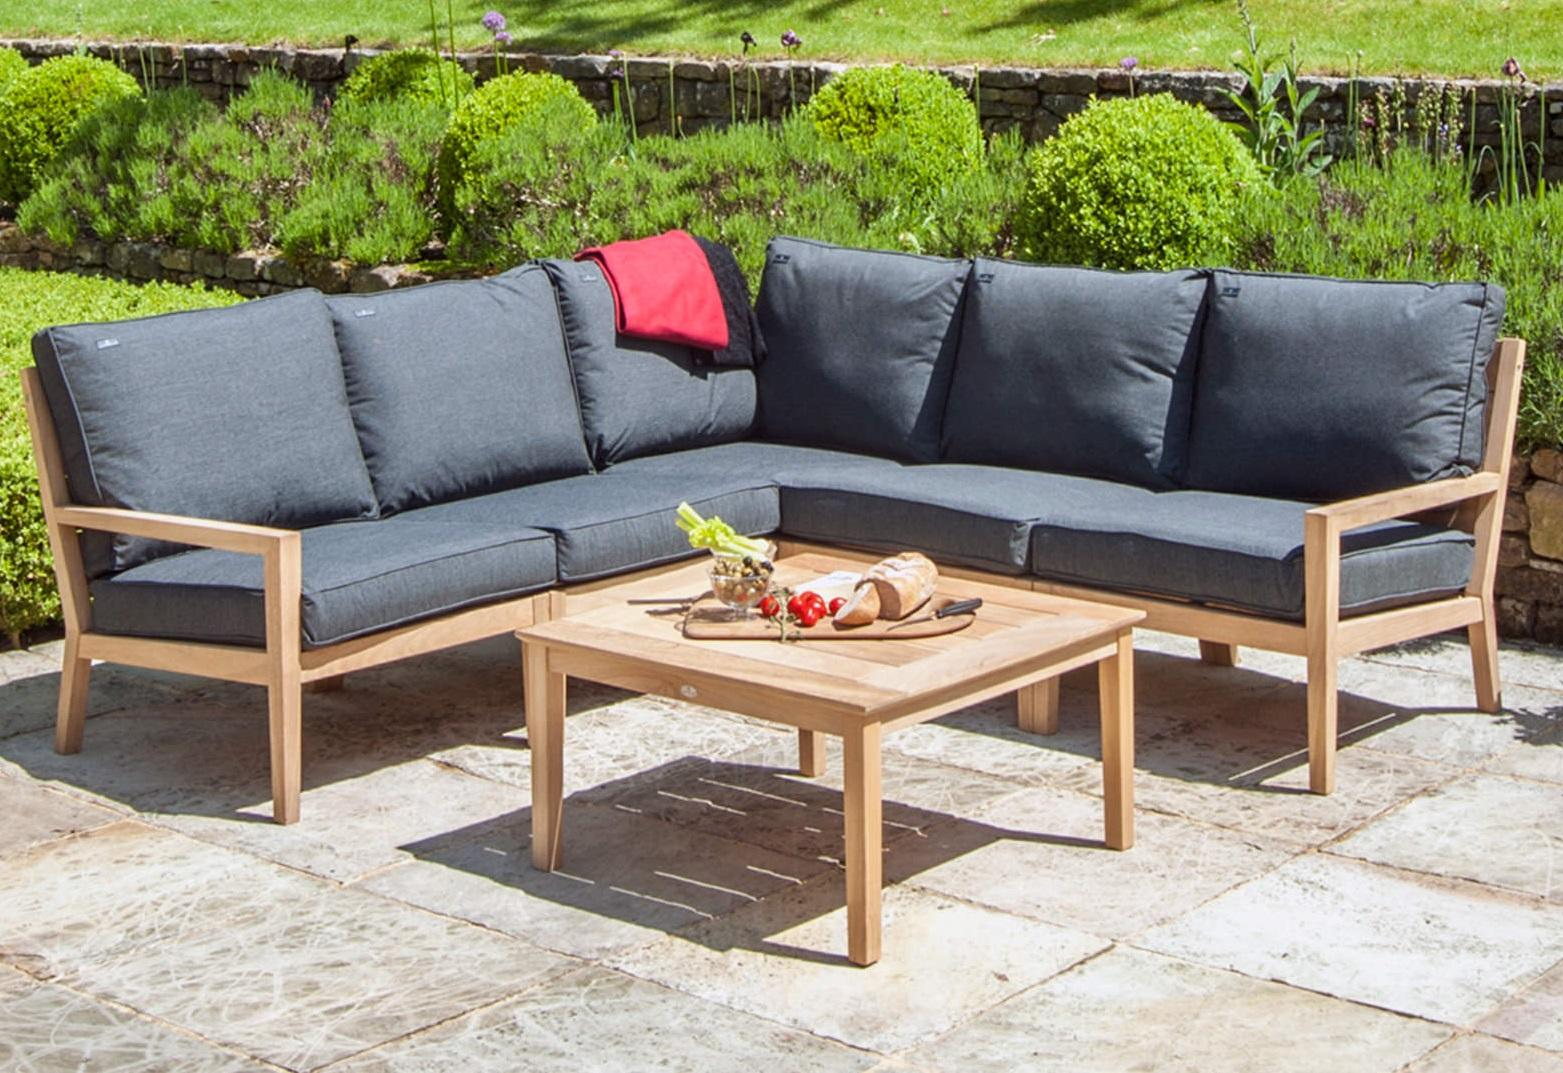 wood_garden_corner_lounge_set_outdoor_hardwood_roble_6_piece